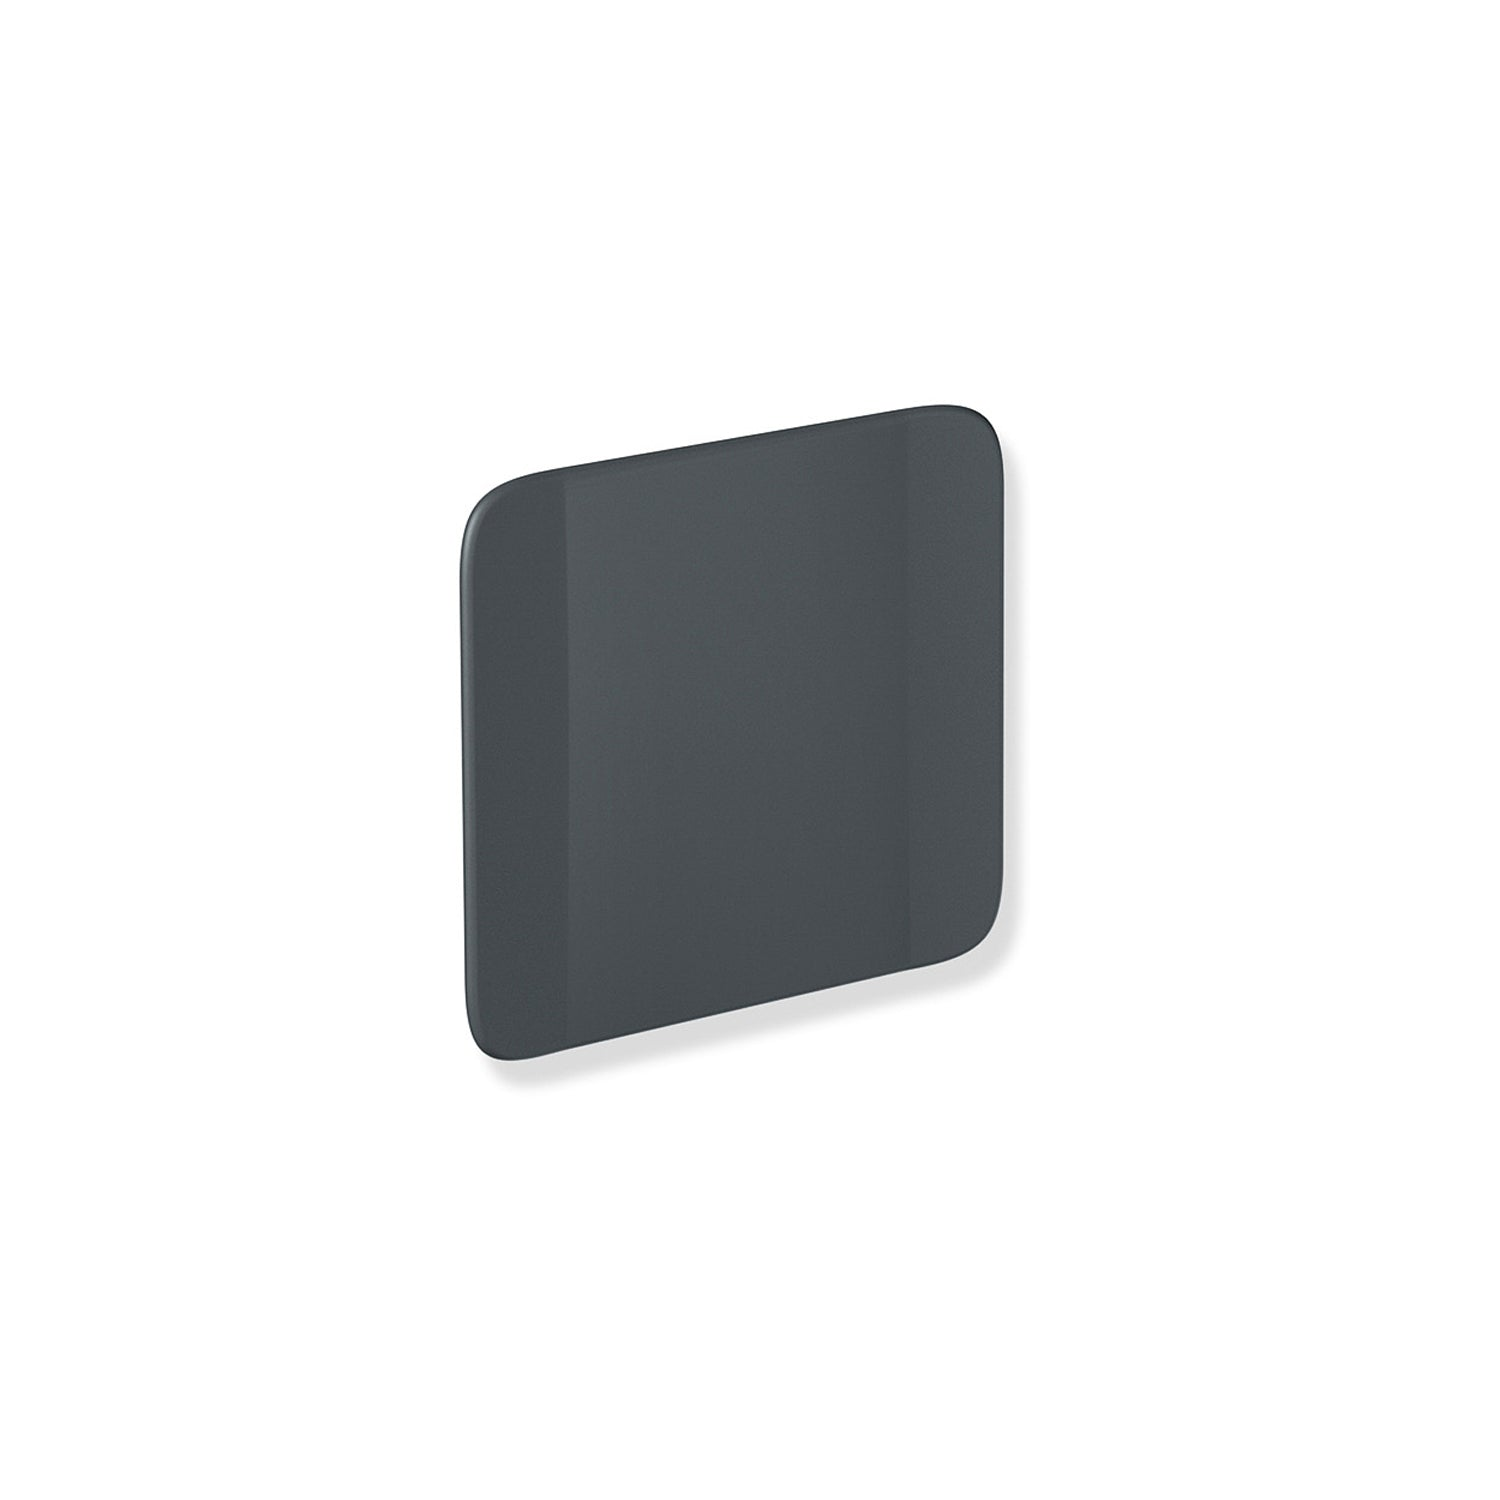 Backrest with Wall Bracket with a matt black finish on a white background